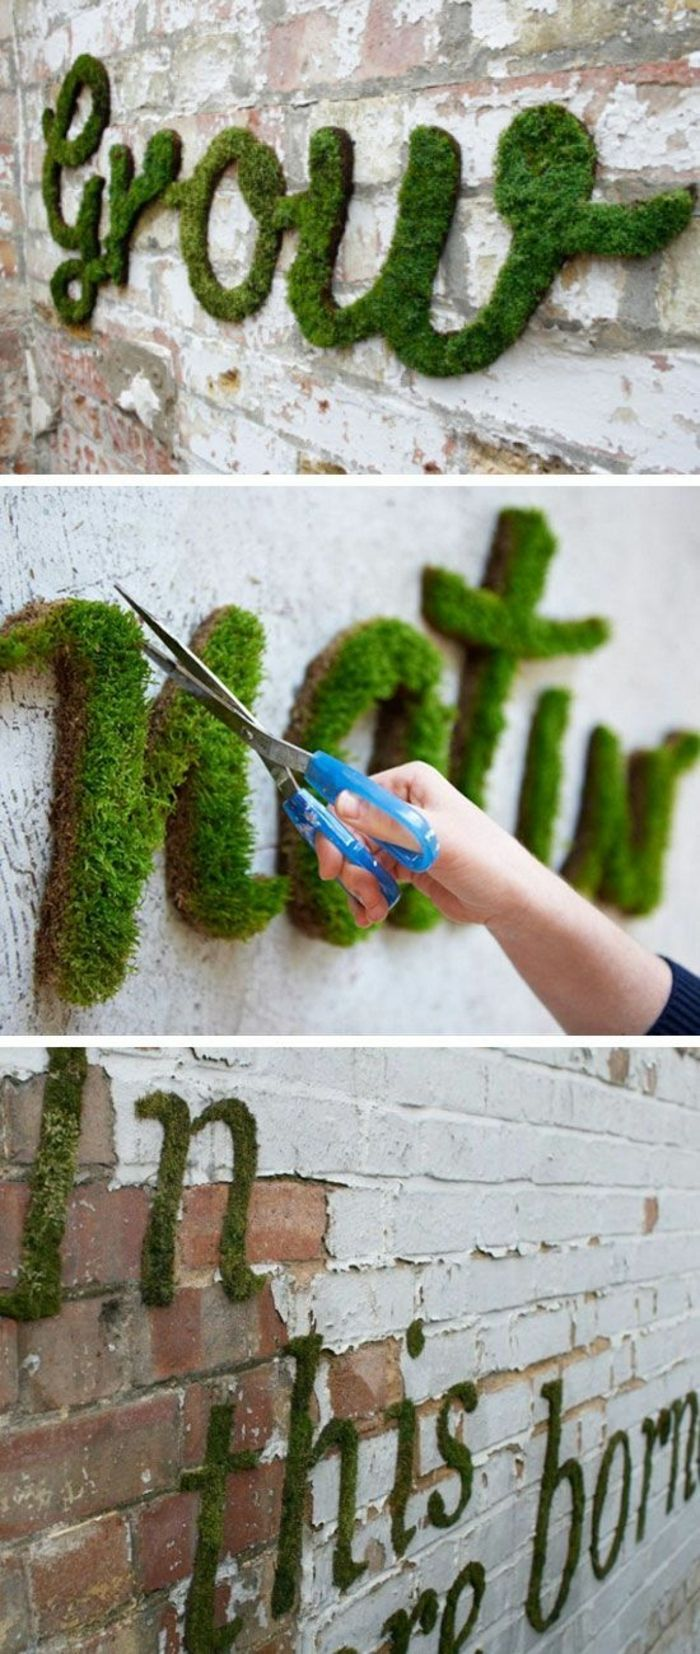 ▷ 1001+ ideas for decoration with moss to amaze and admire